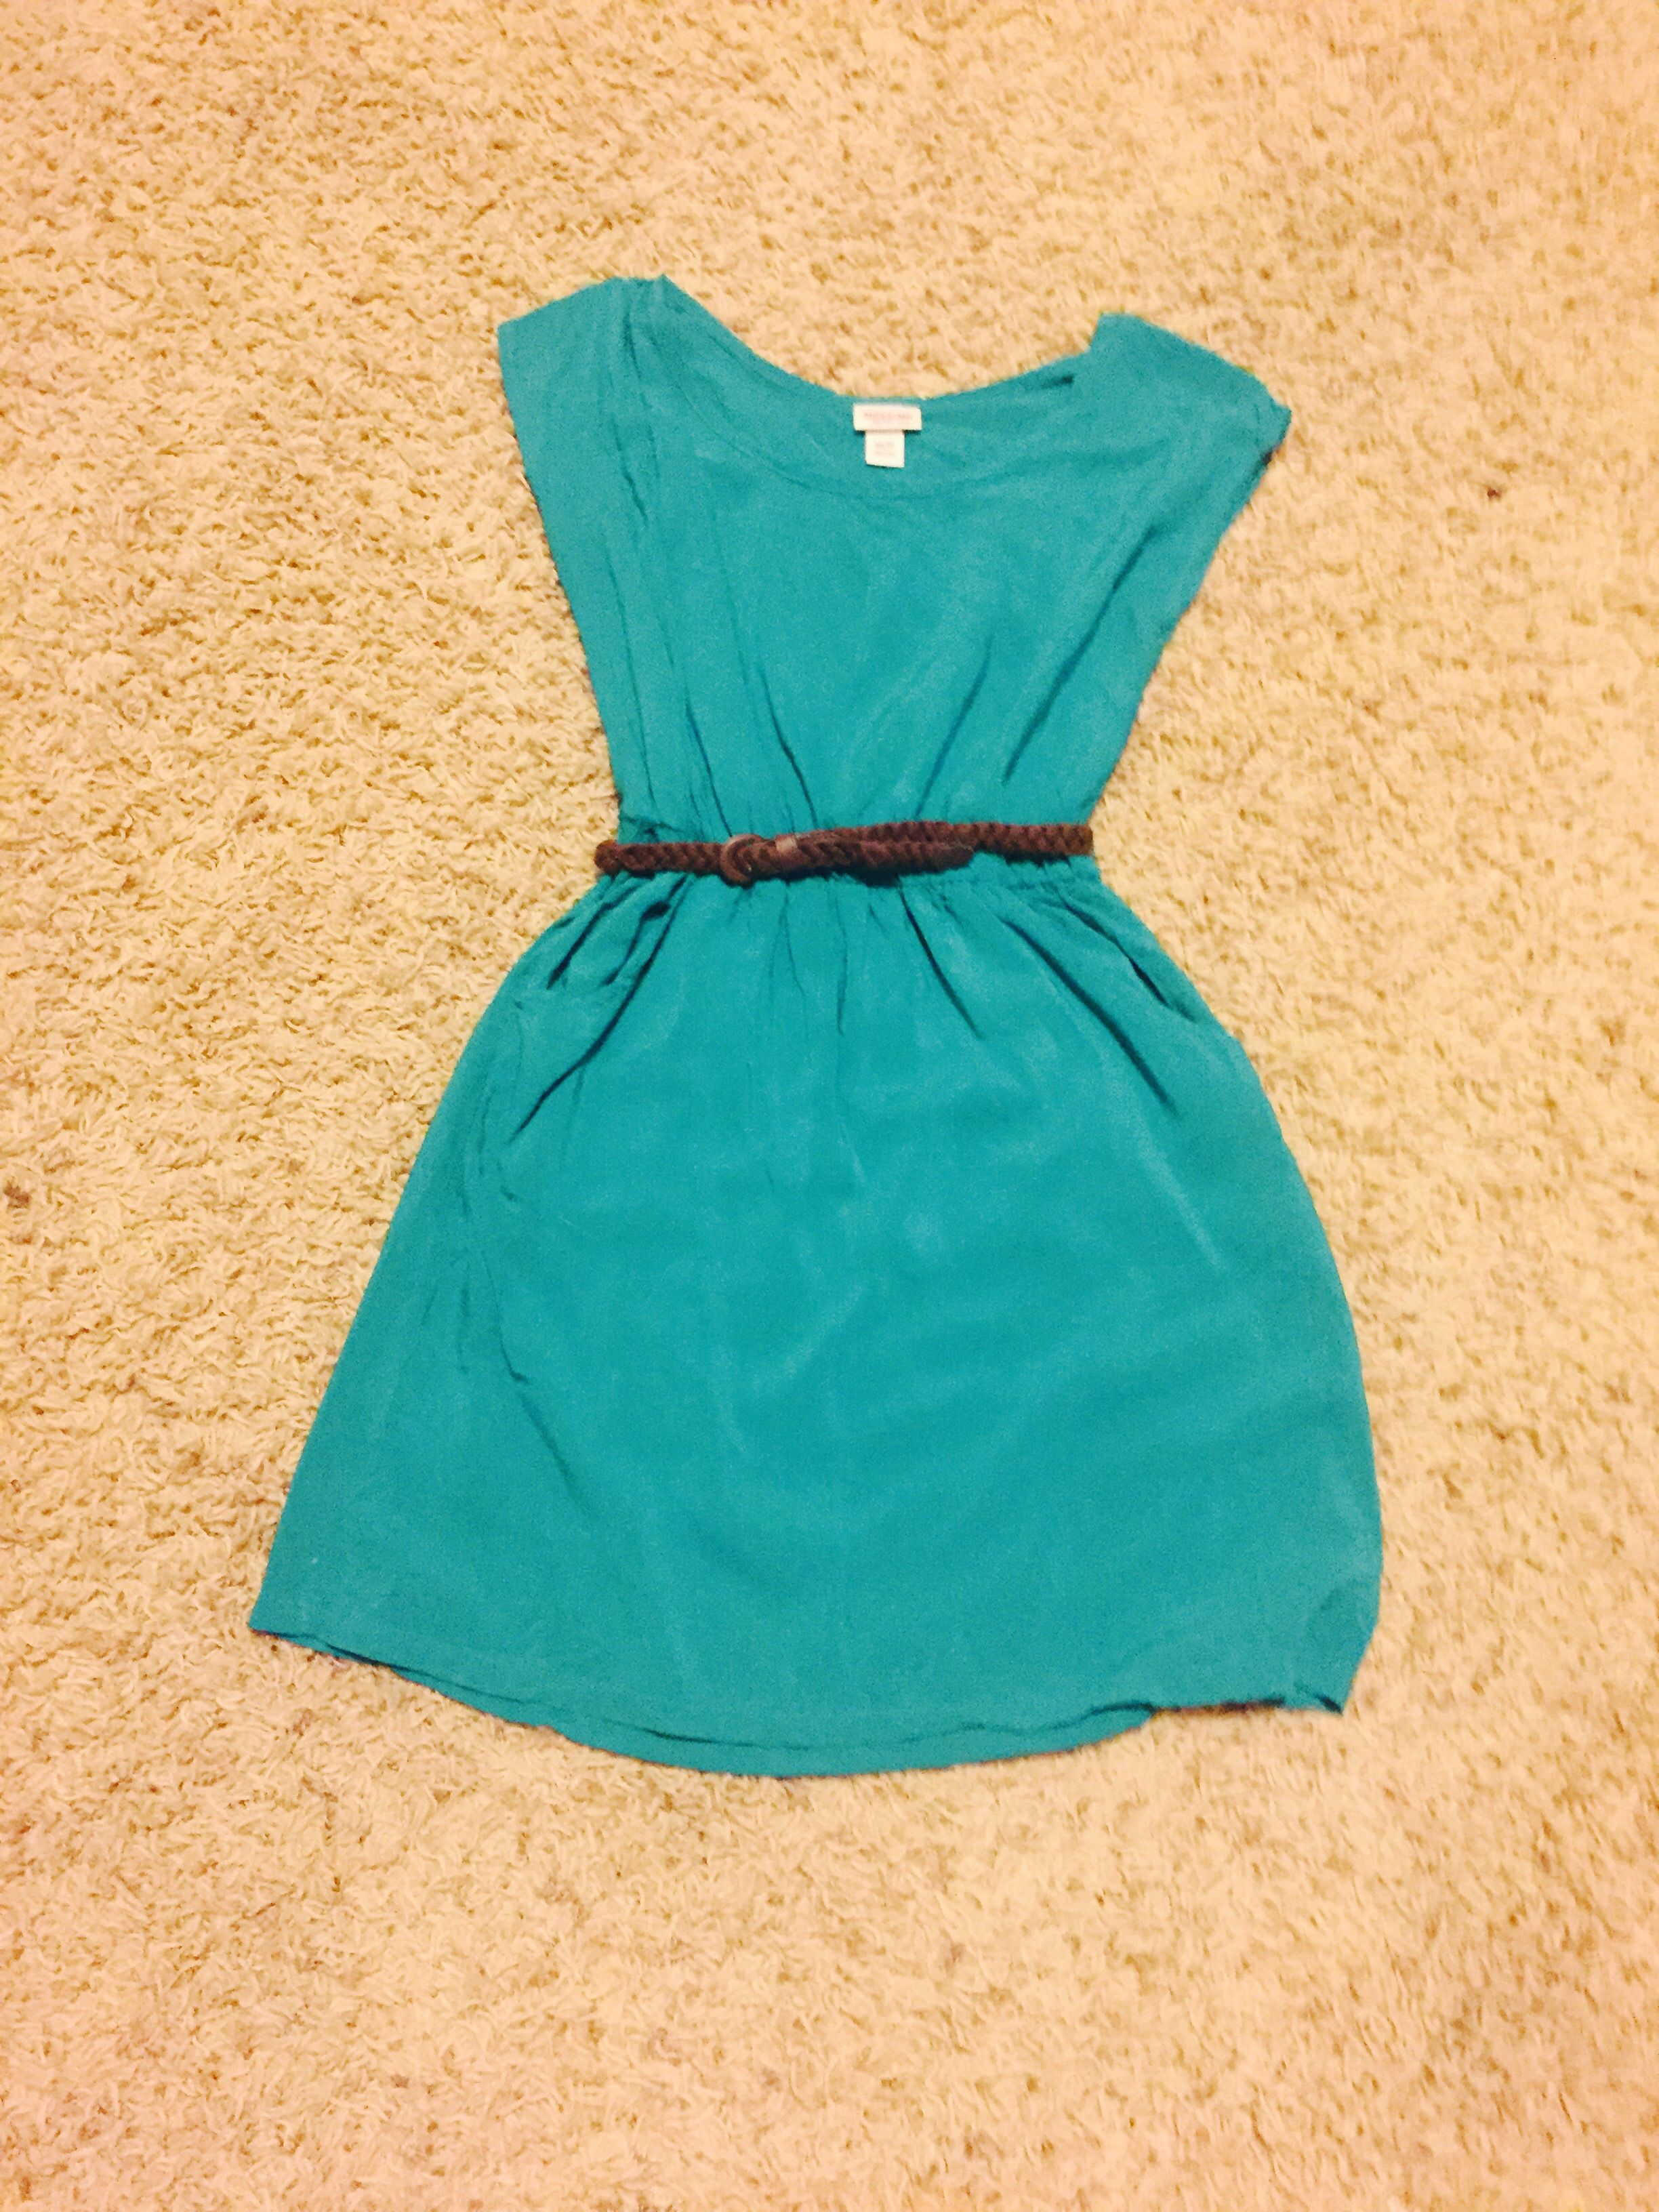 Mossimo green dress with brown braided leather belt. Has pockets. Size Xsmall.